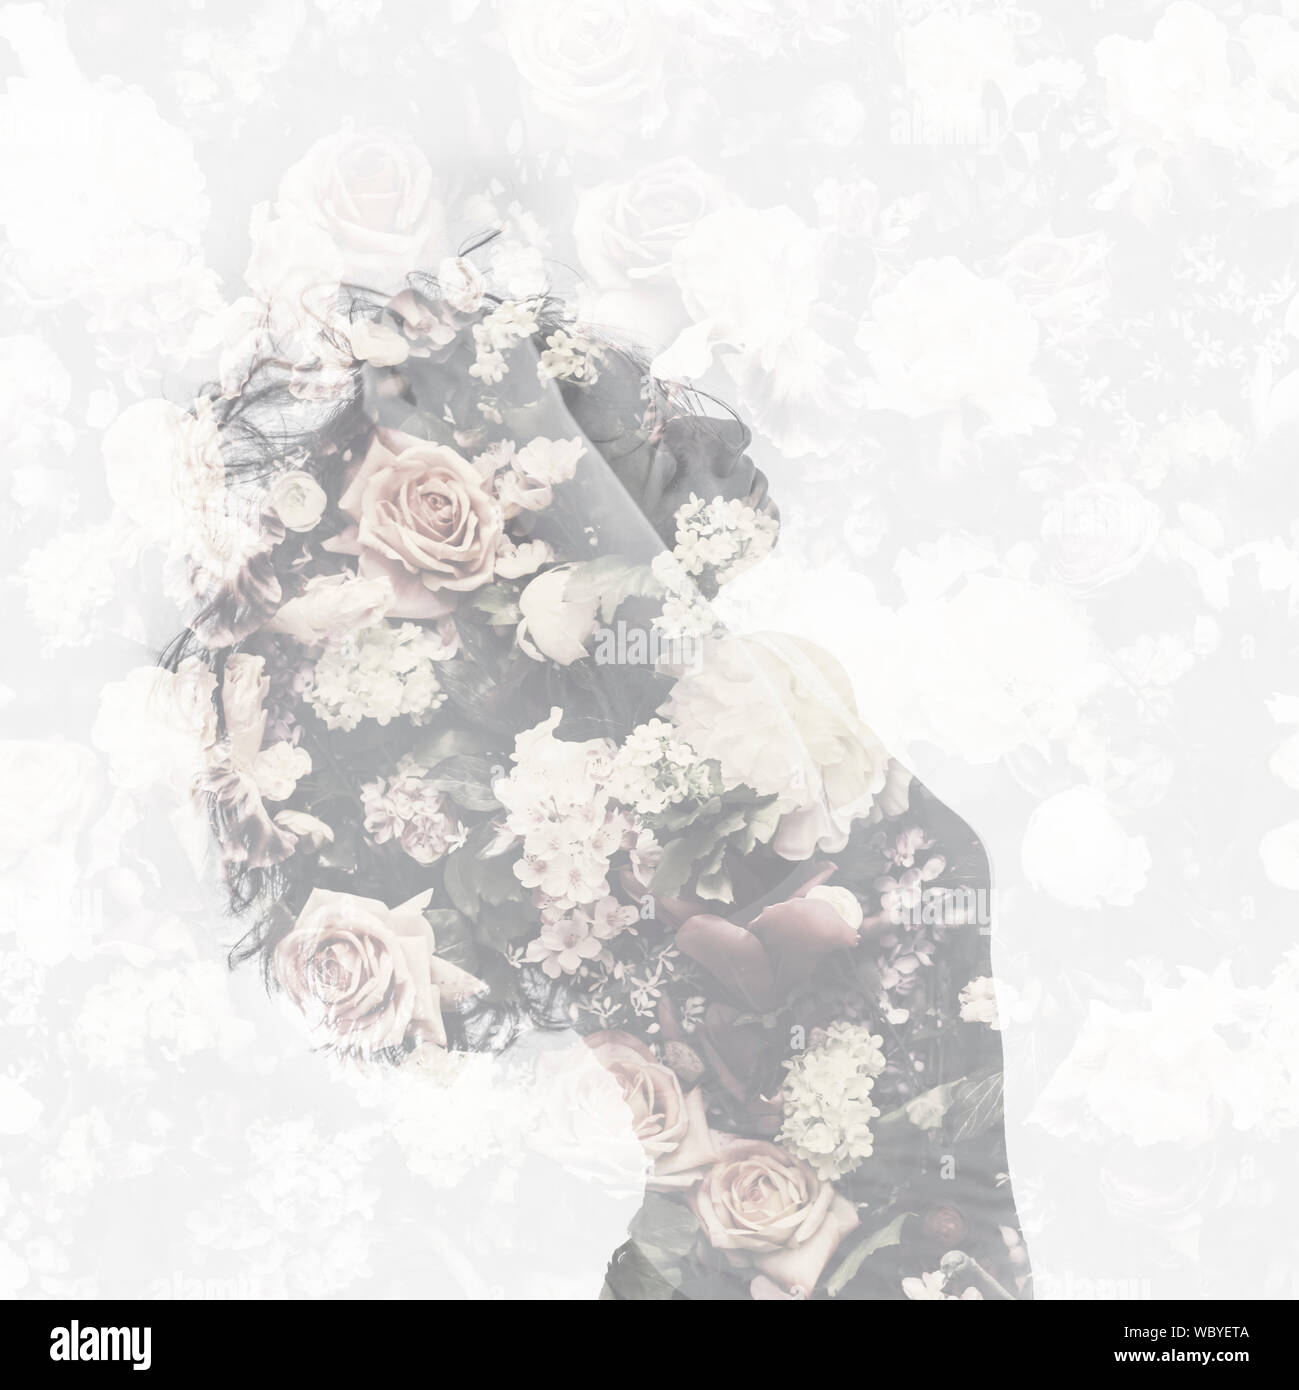 Double Exposure With Female Portrait And Vintage Flower